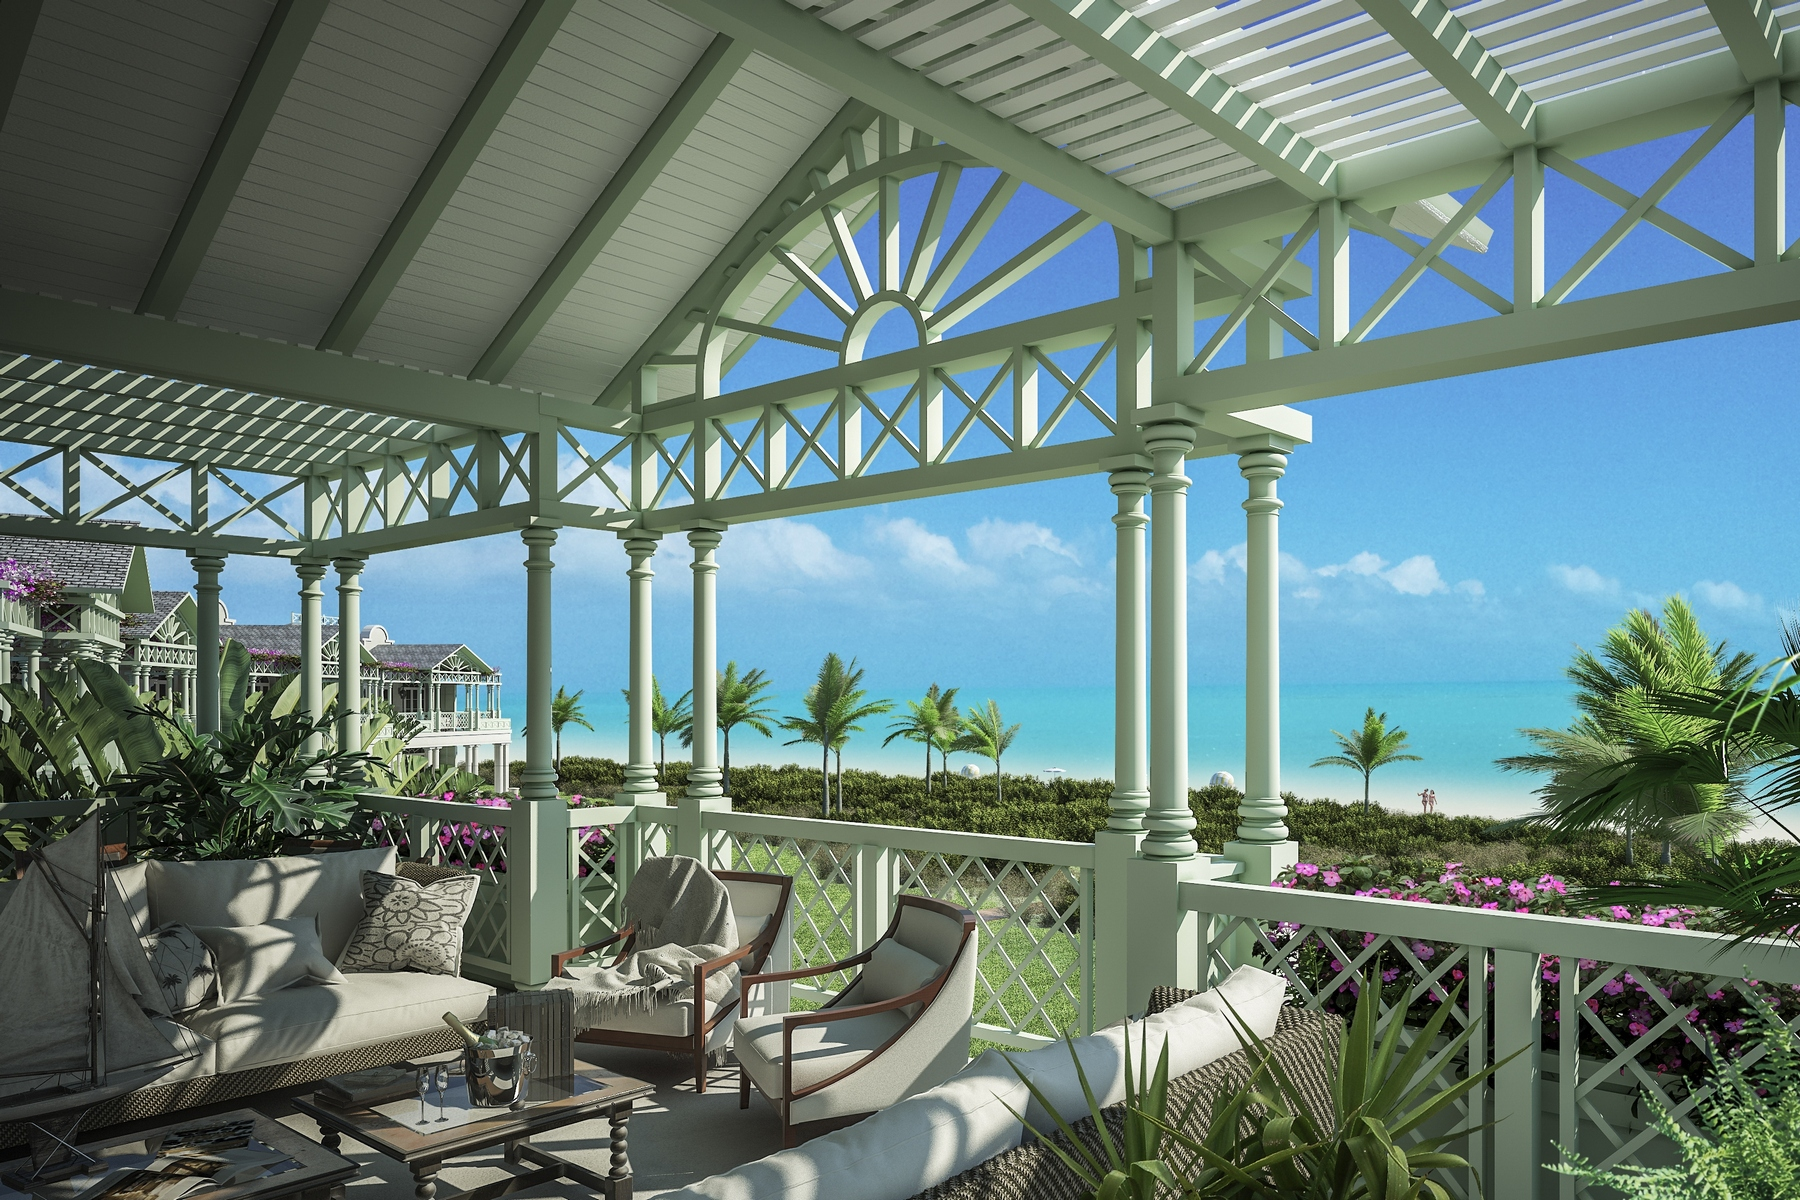 Single Family Home for Sale at The Shore Club ~ Villa 5 The Shore Club, Long Bay, Providenciales Turks And Caicos Islands